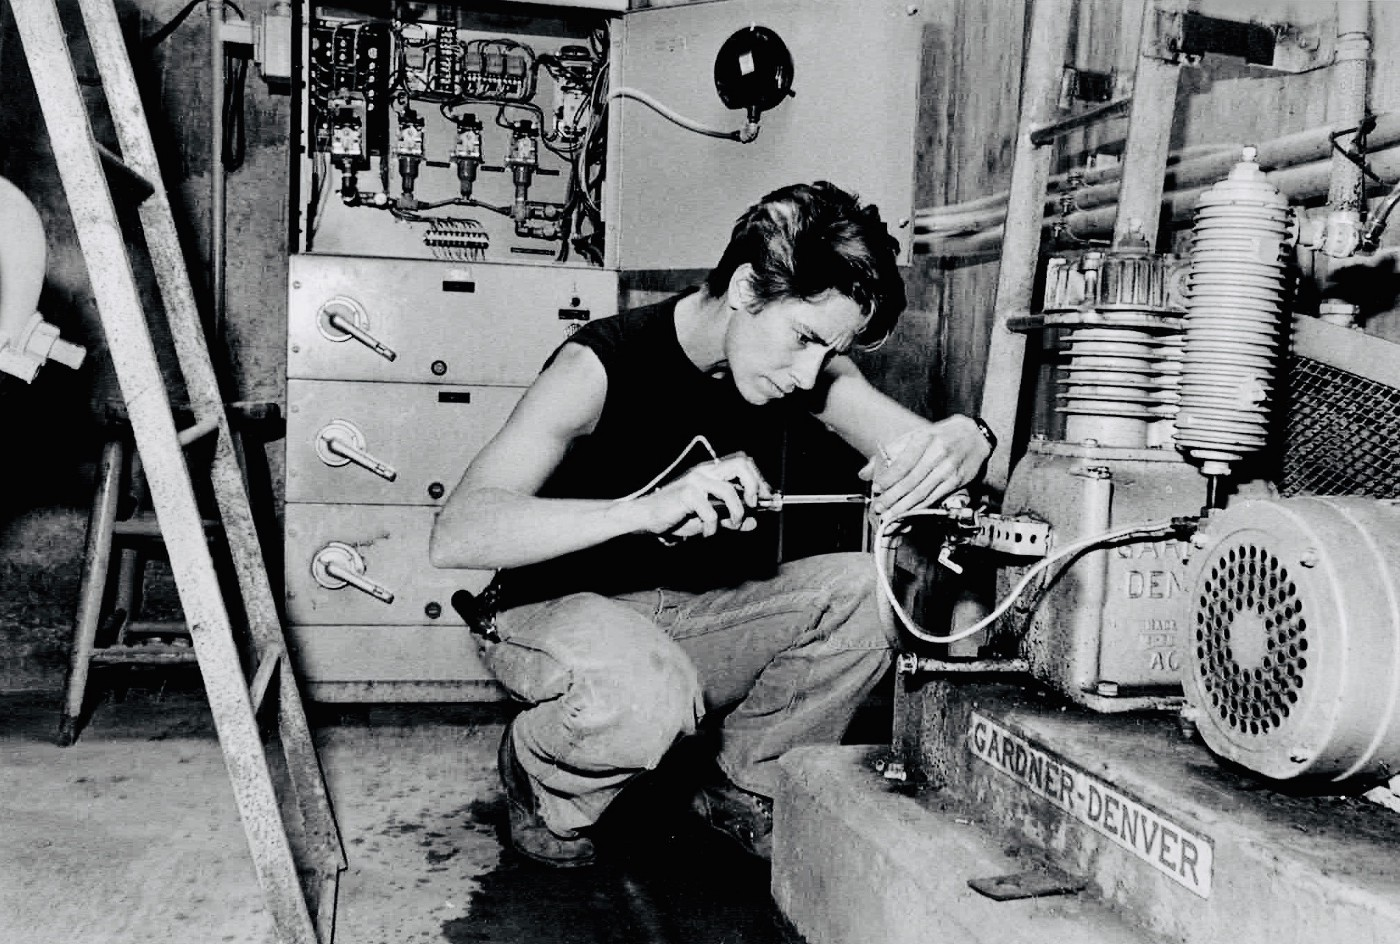 Black and white photo of the author in about 1985, working at a water department pump station.